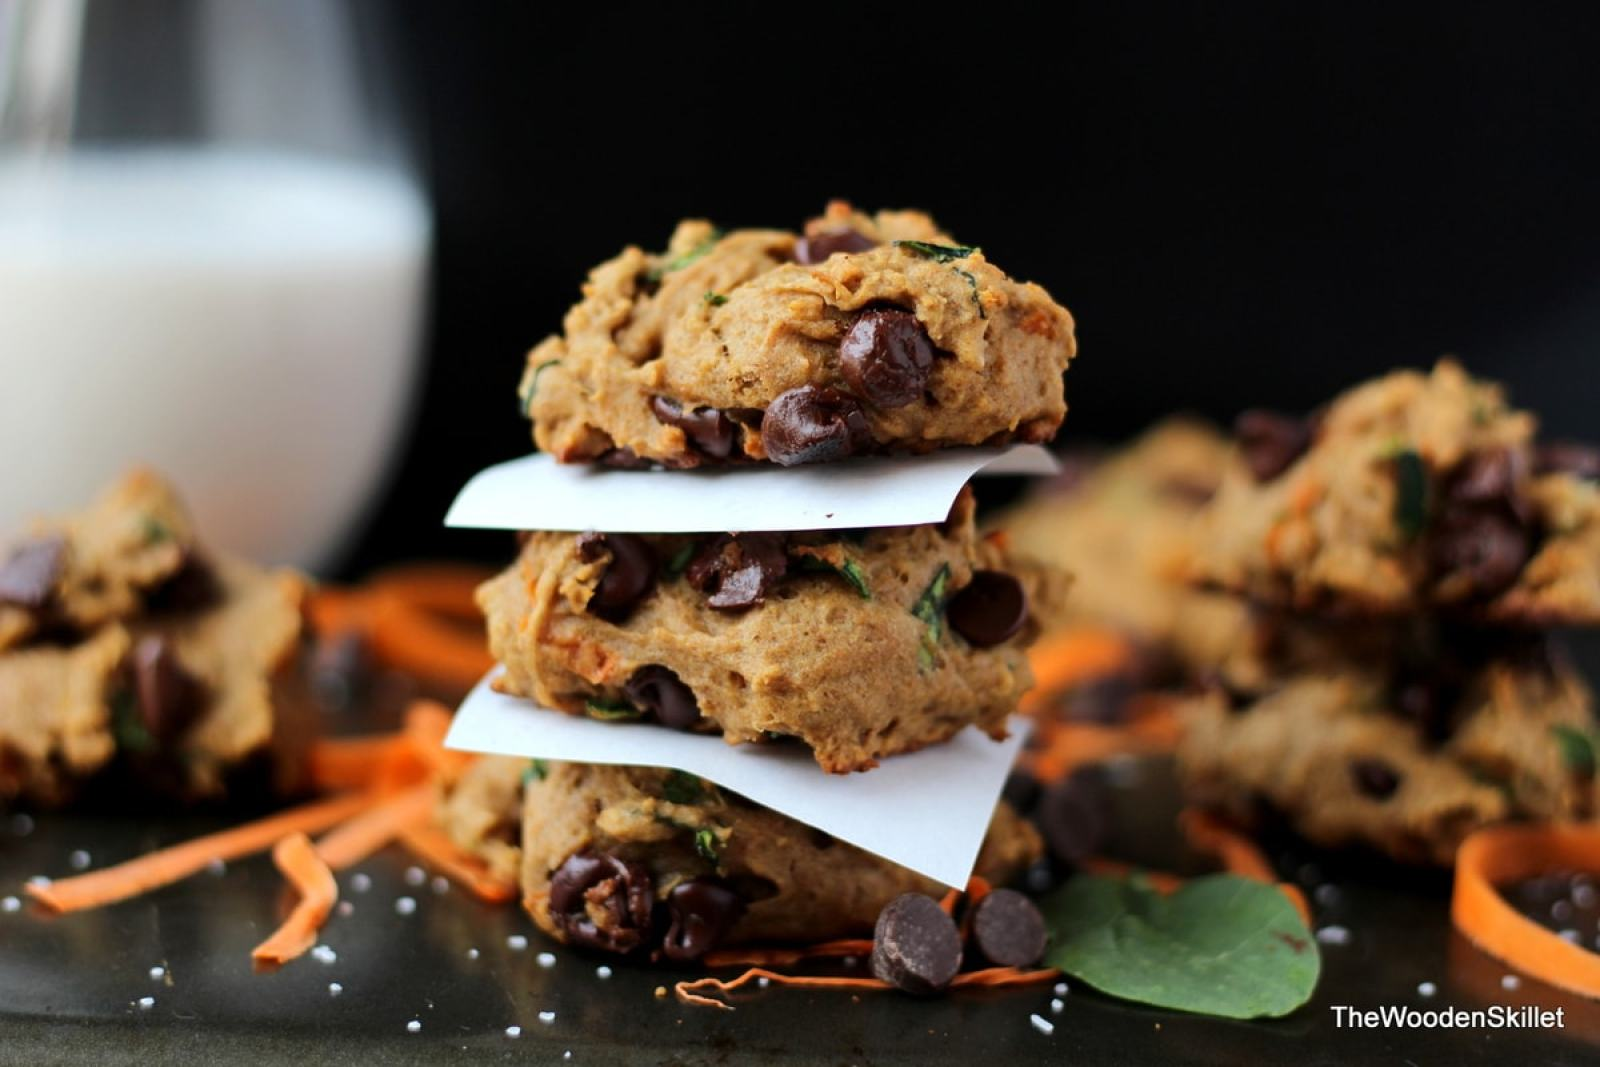 Healthy Chocolate Chip Cookies with Spinach, Zucchini and Carrots - They are healthy and kid-friendly! thewoodenskillet.com #kidfriendly #cookies